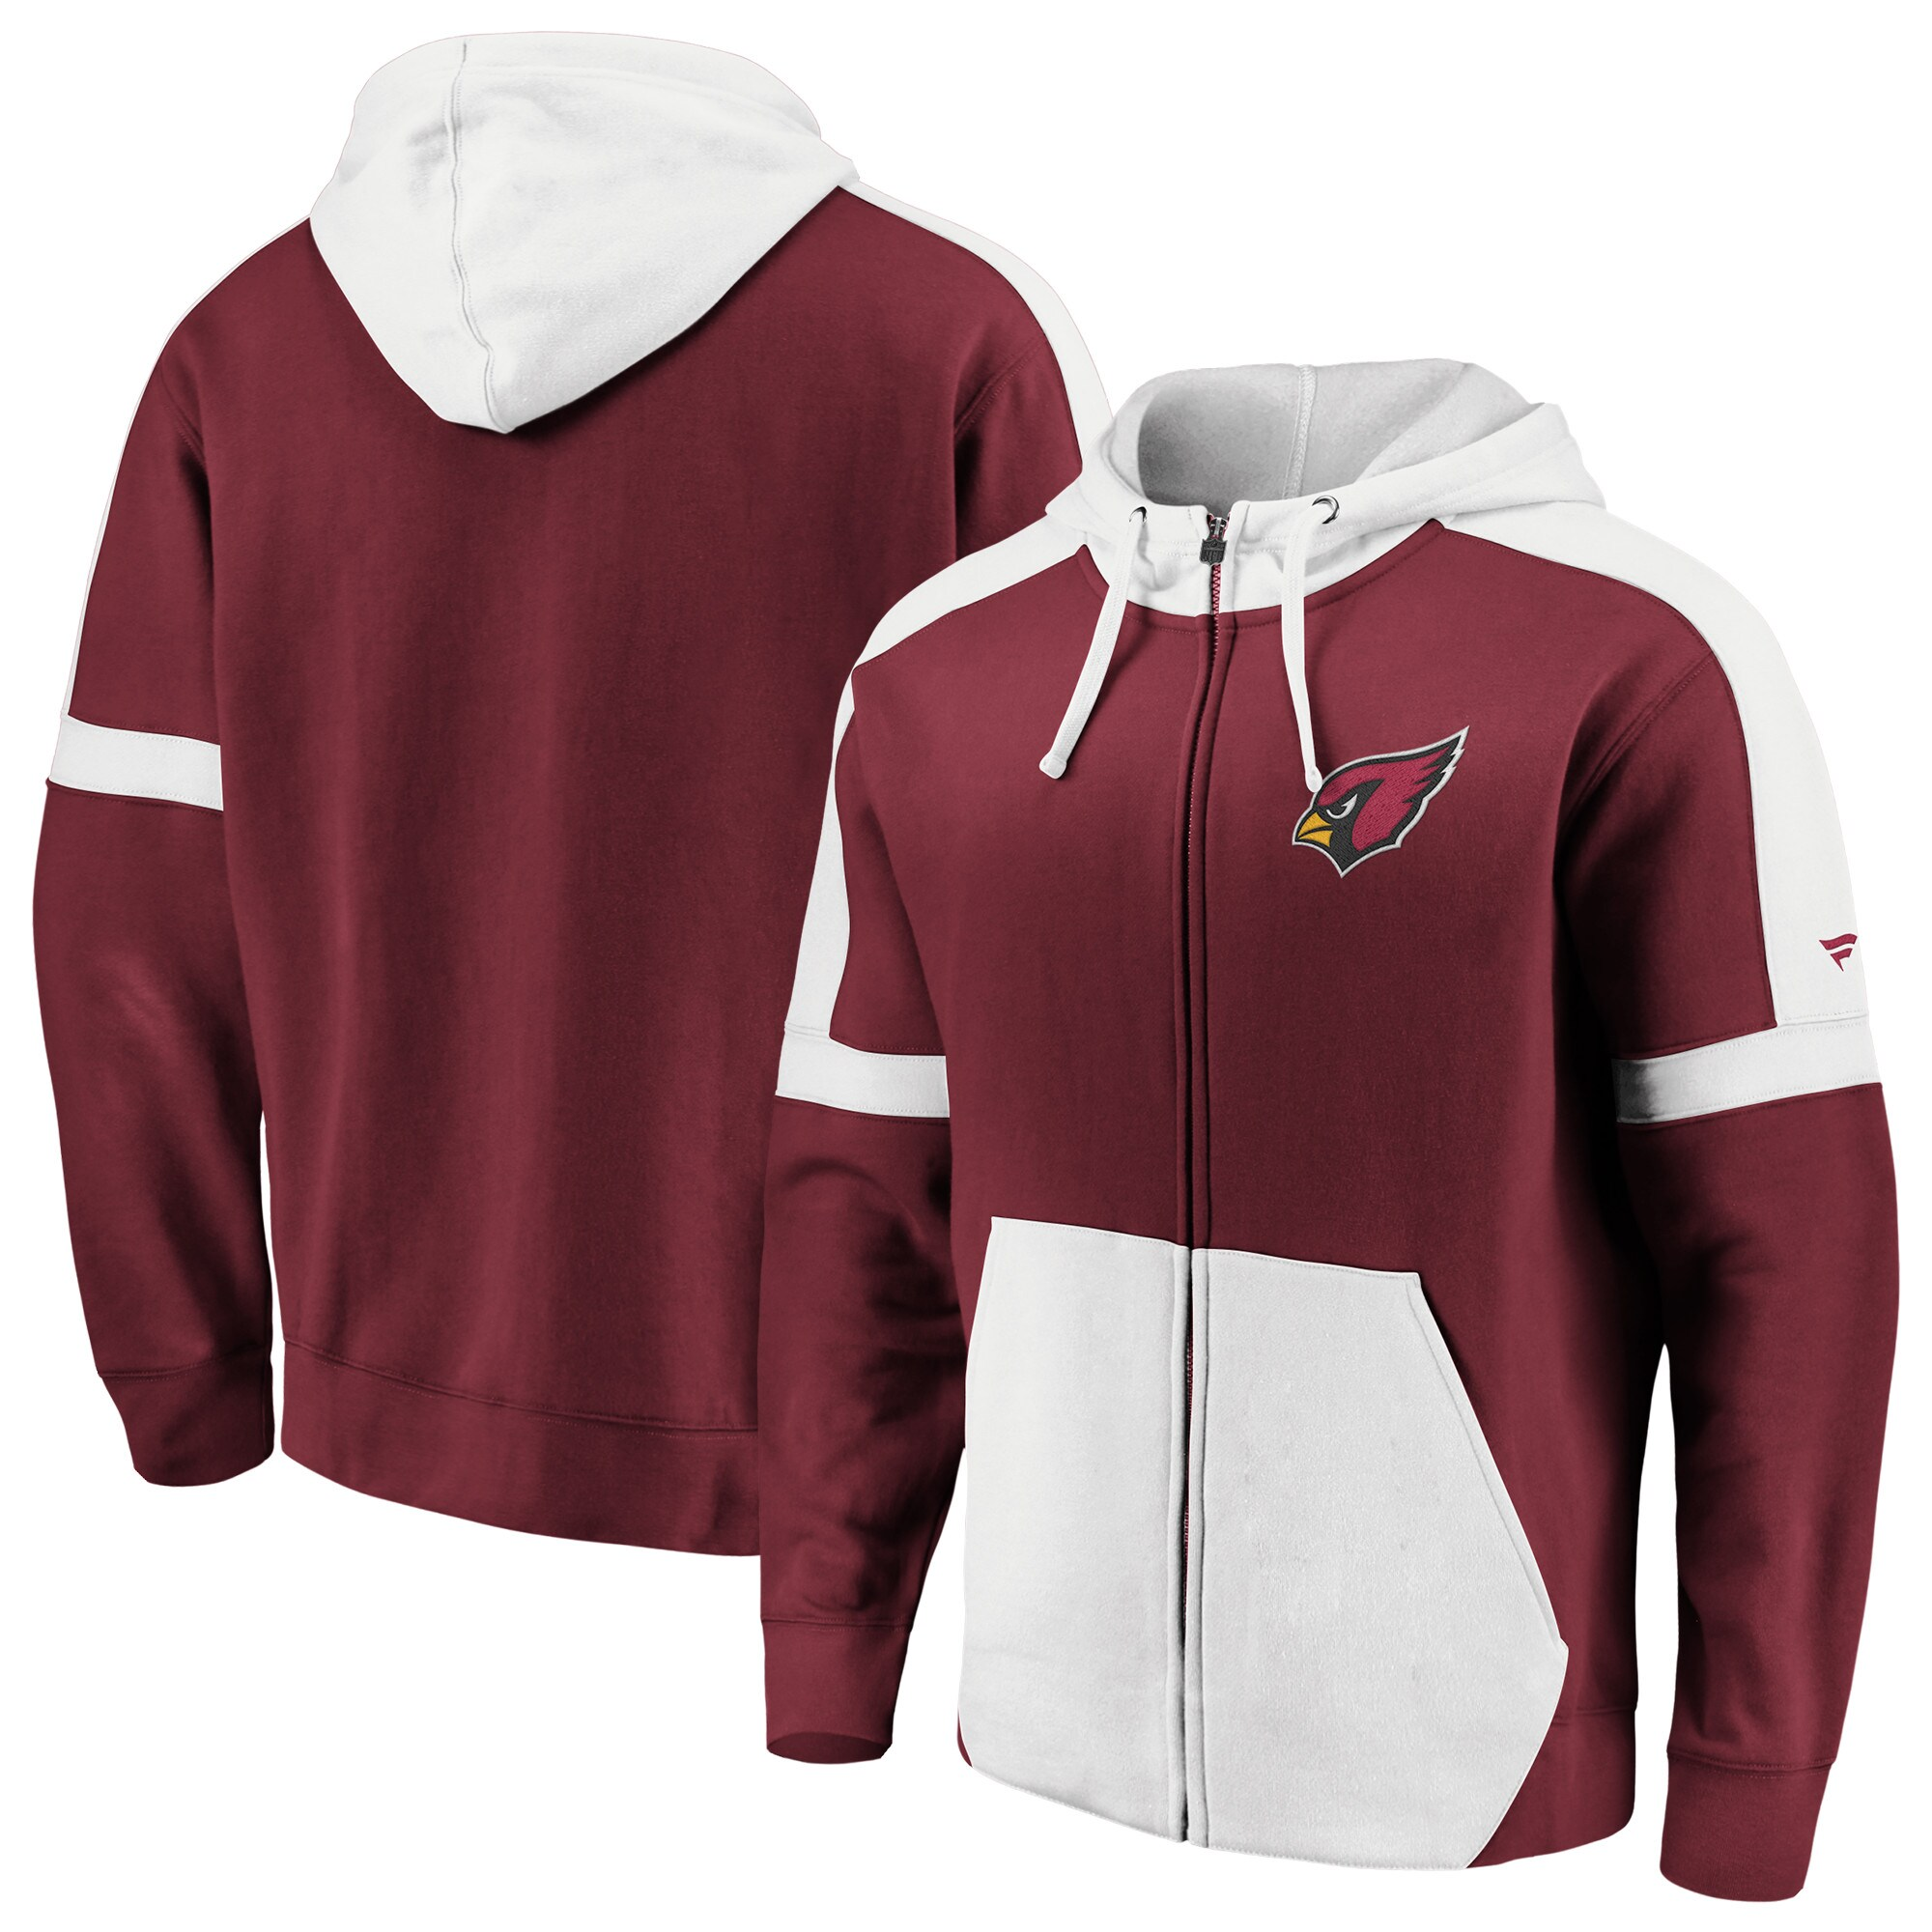 Arizona Cardinals NFL Pro Line by Fanatics Branded Big & Tall Iconic Full-Zip Hoodie - Cardinal/White